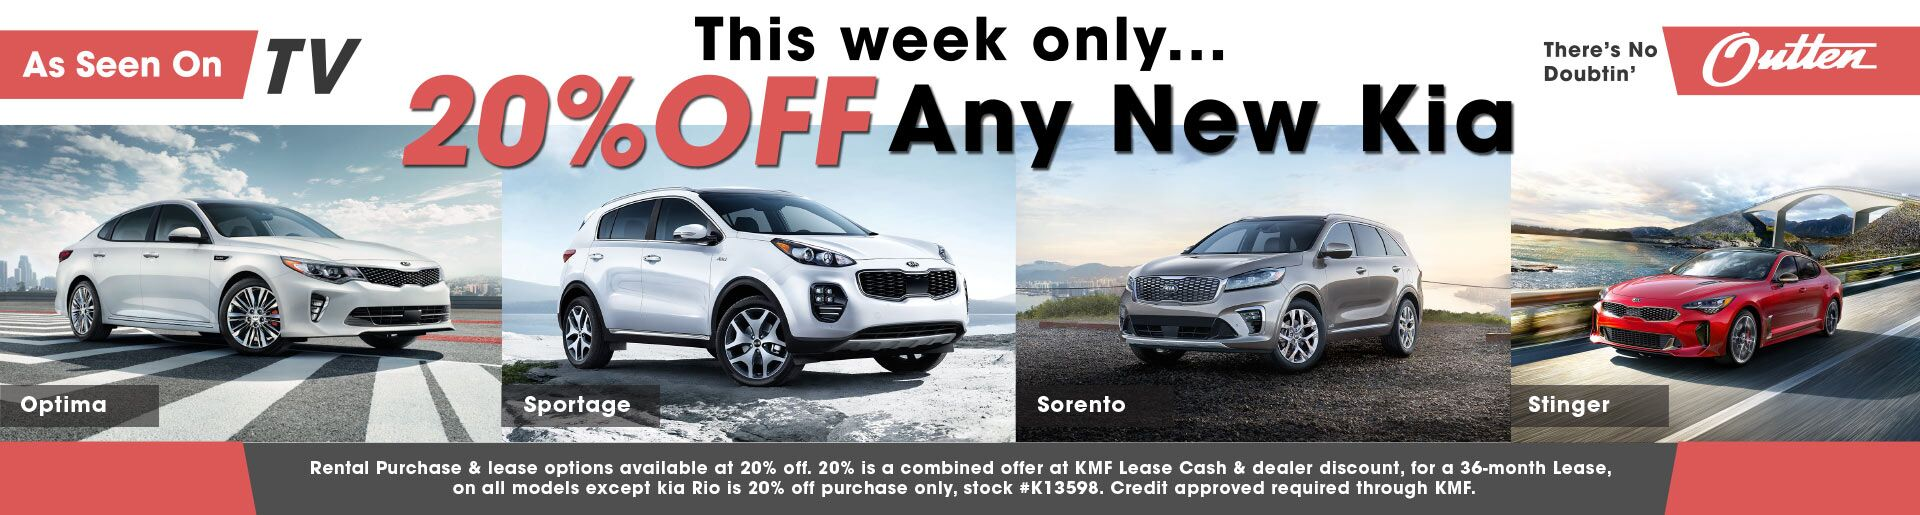 20% off any new Kia